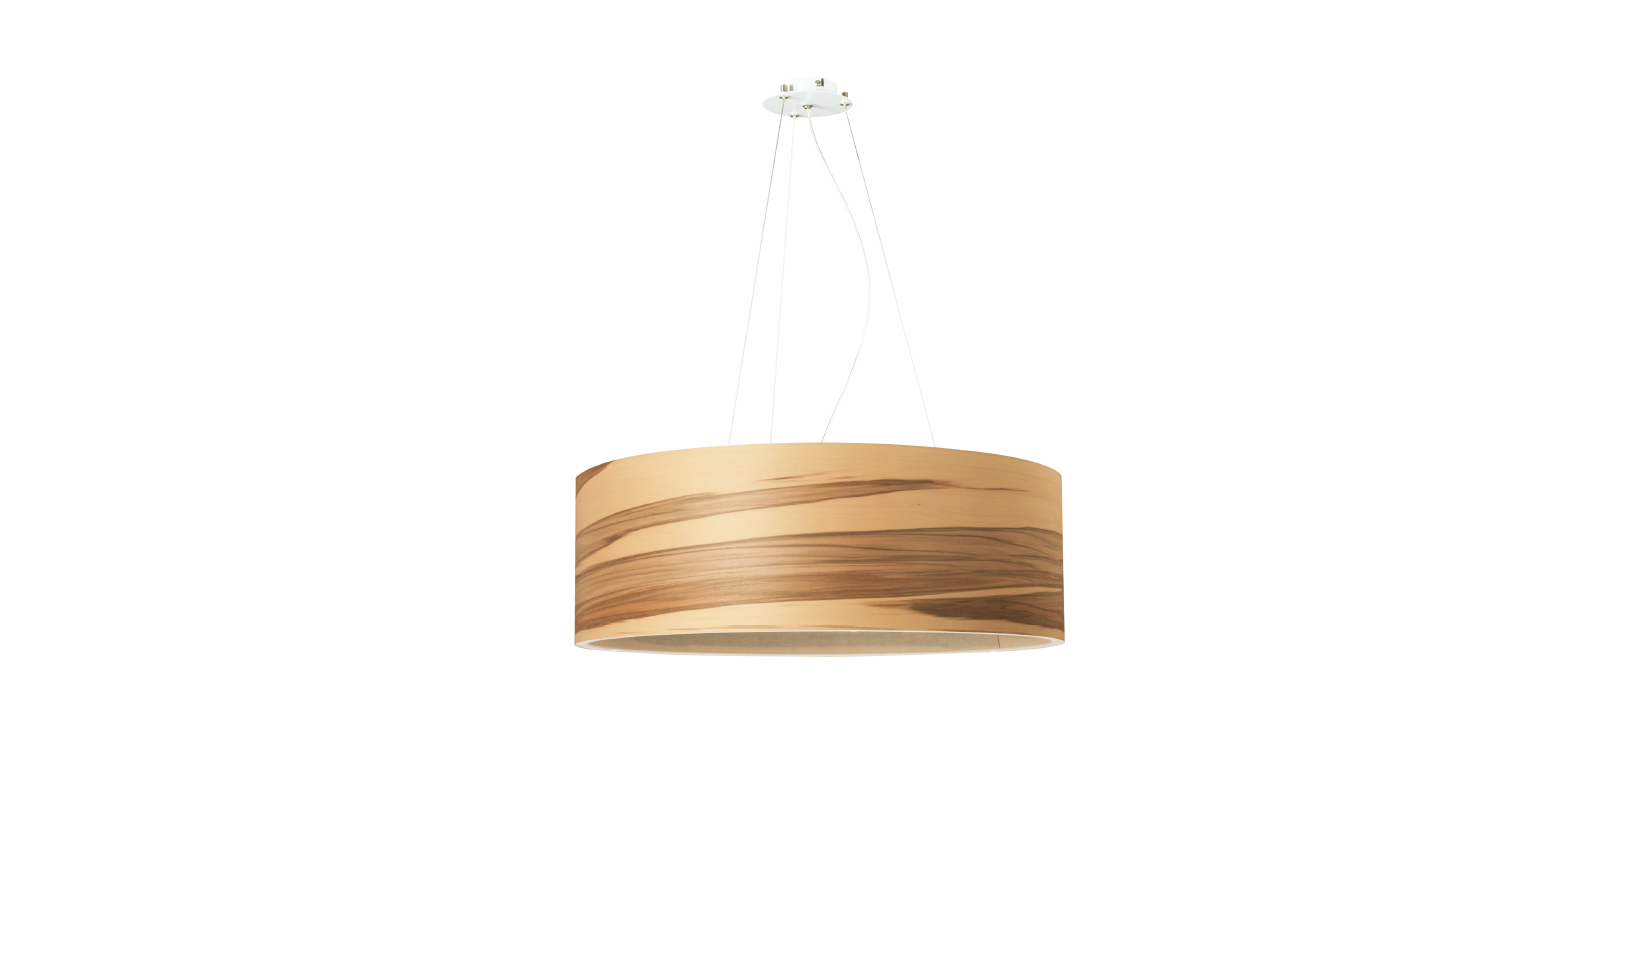 dreizehngrad pendant lamp model Funk 60/20P satin walnut veneer lamp design lamp